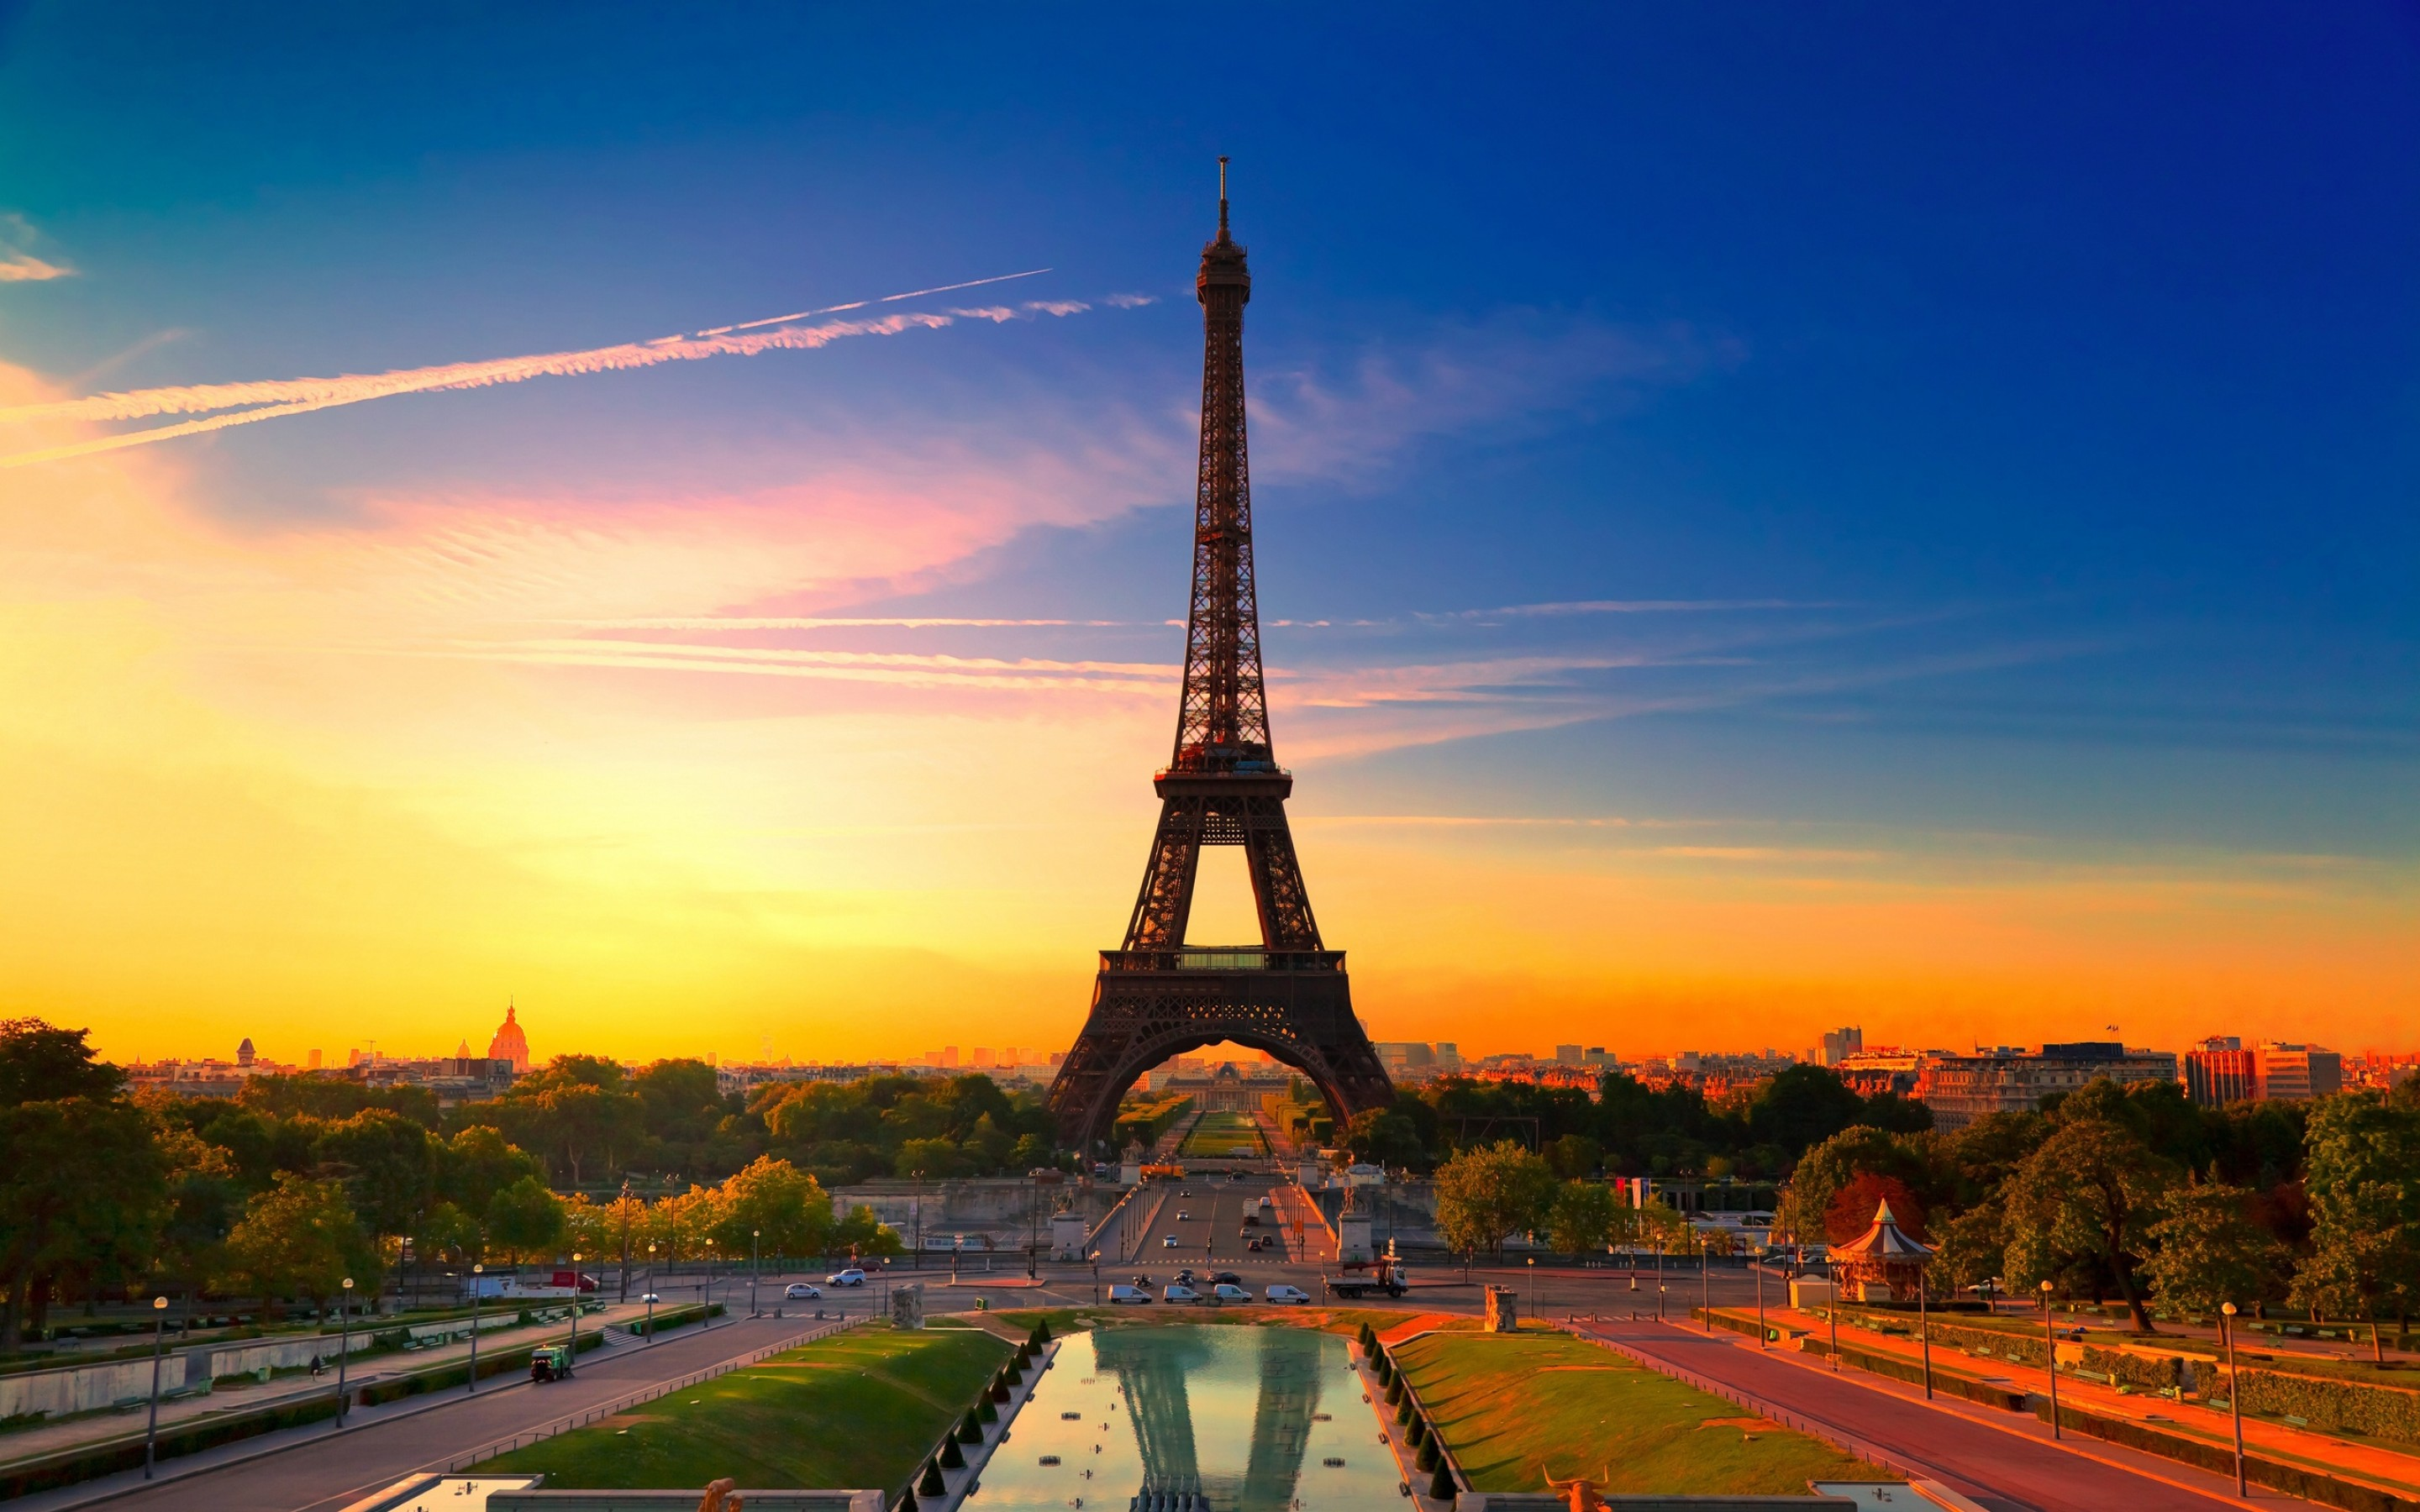 Widescreen Paris Image Paris France Eiffel Tower HD Wallpapers 2880x1800